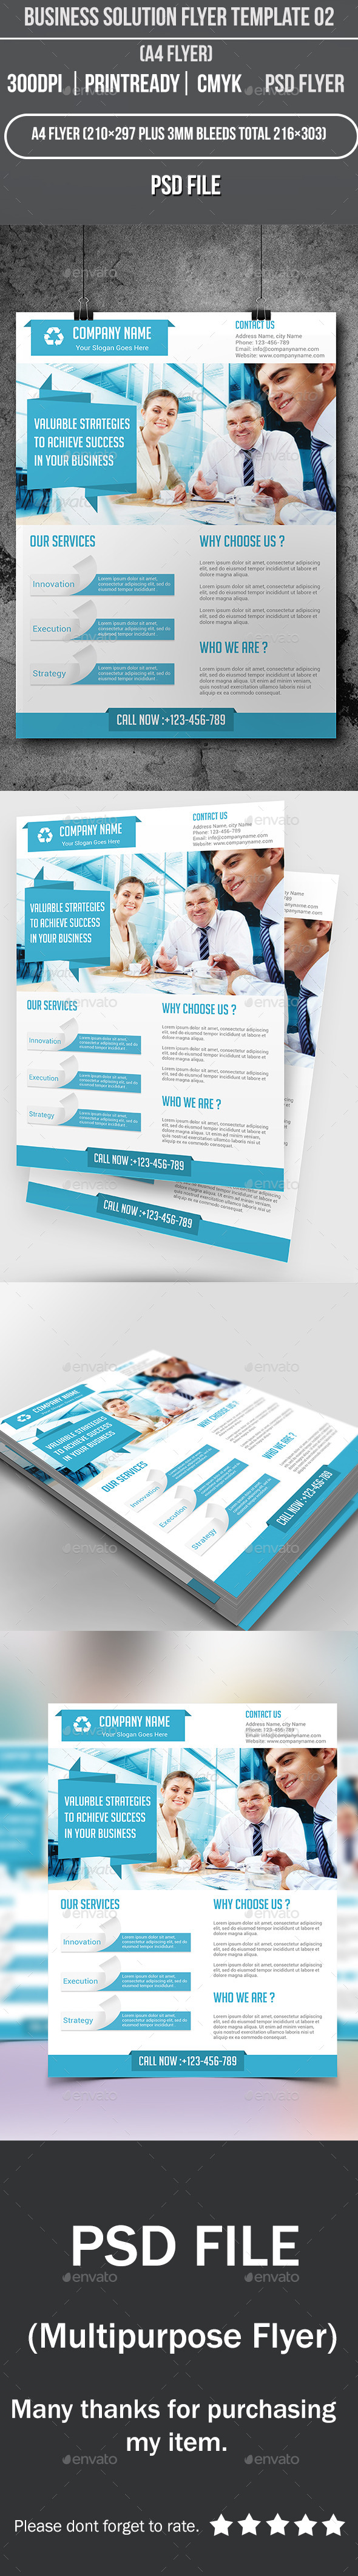 Business Solution Flyer Template 02